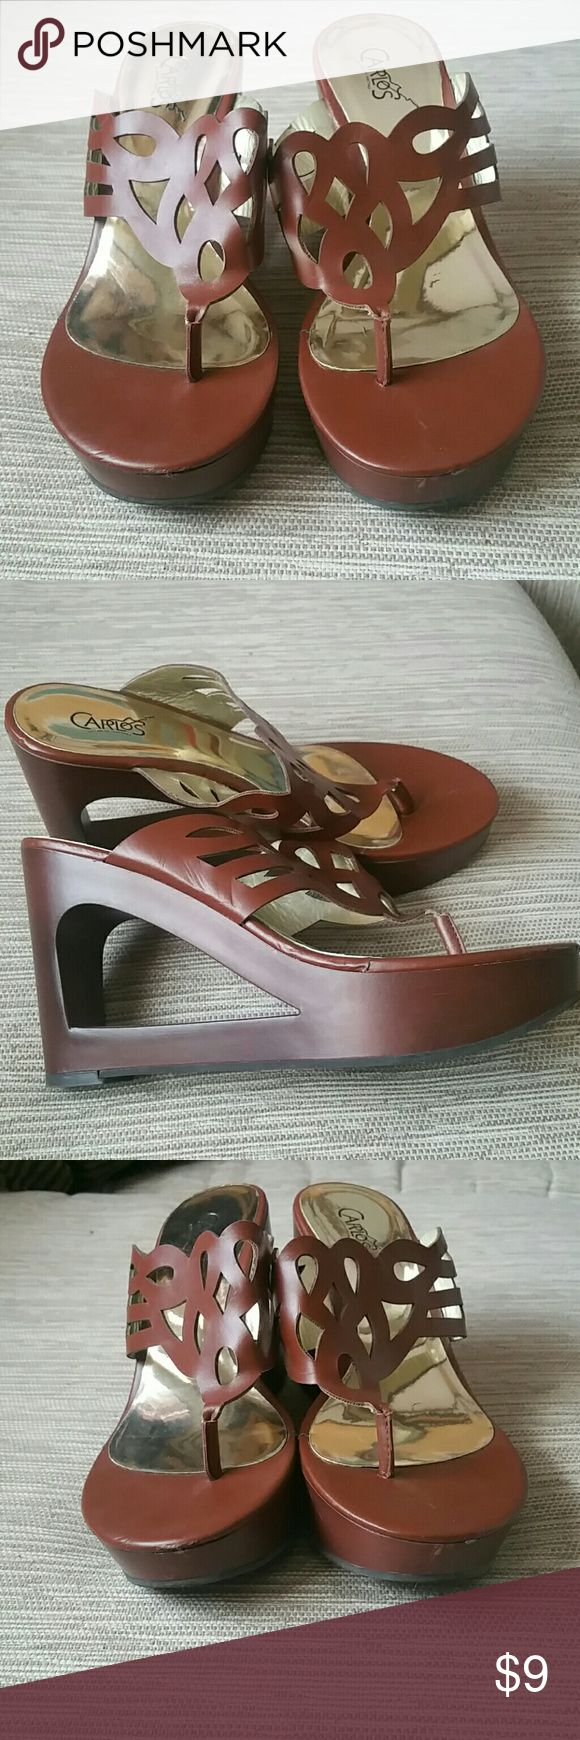 13 Best My Ebay Things Images On Pinterest Woman Active Wear And Clarette Sneakers Clarissa Black Carlos Santana Wedges